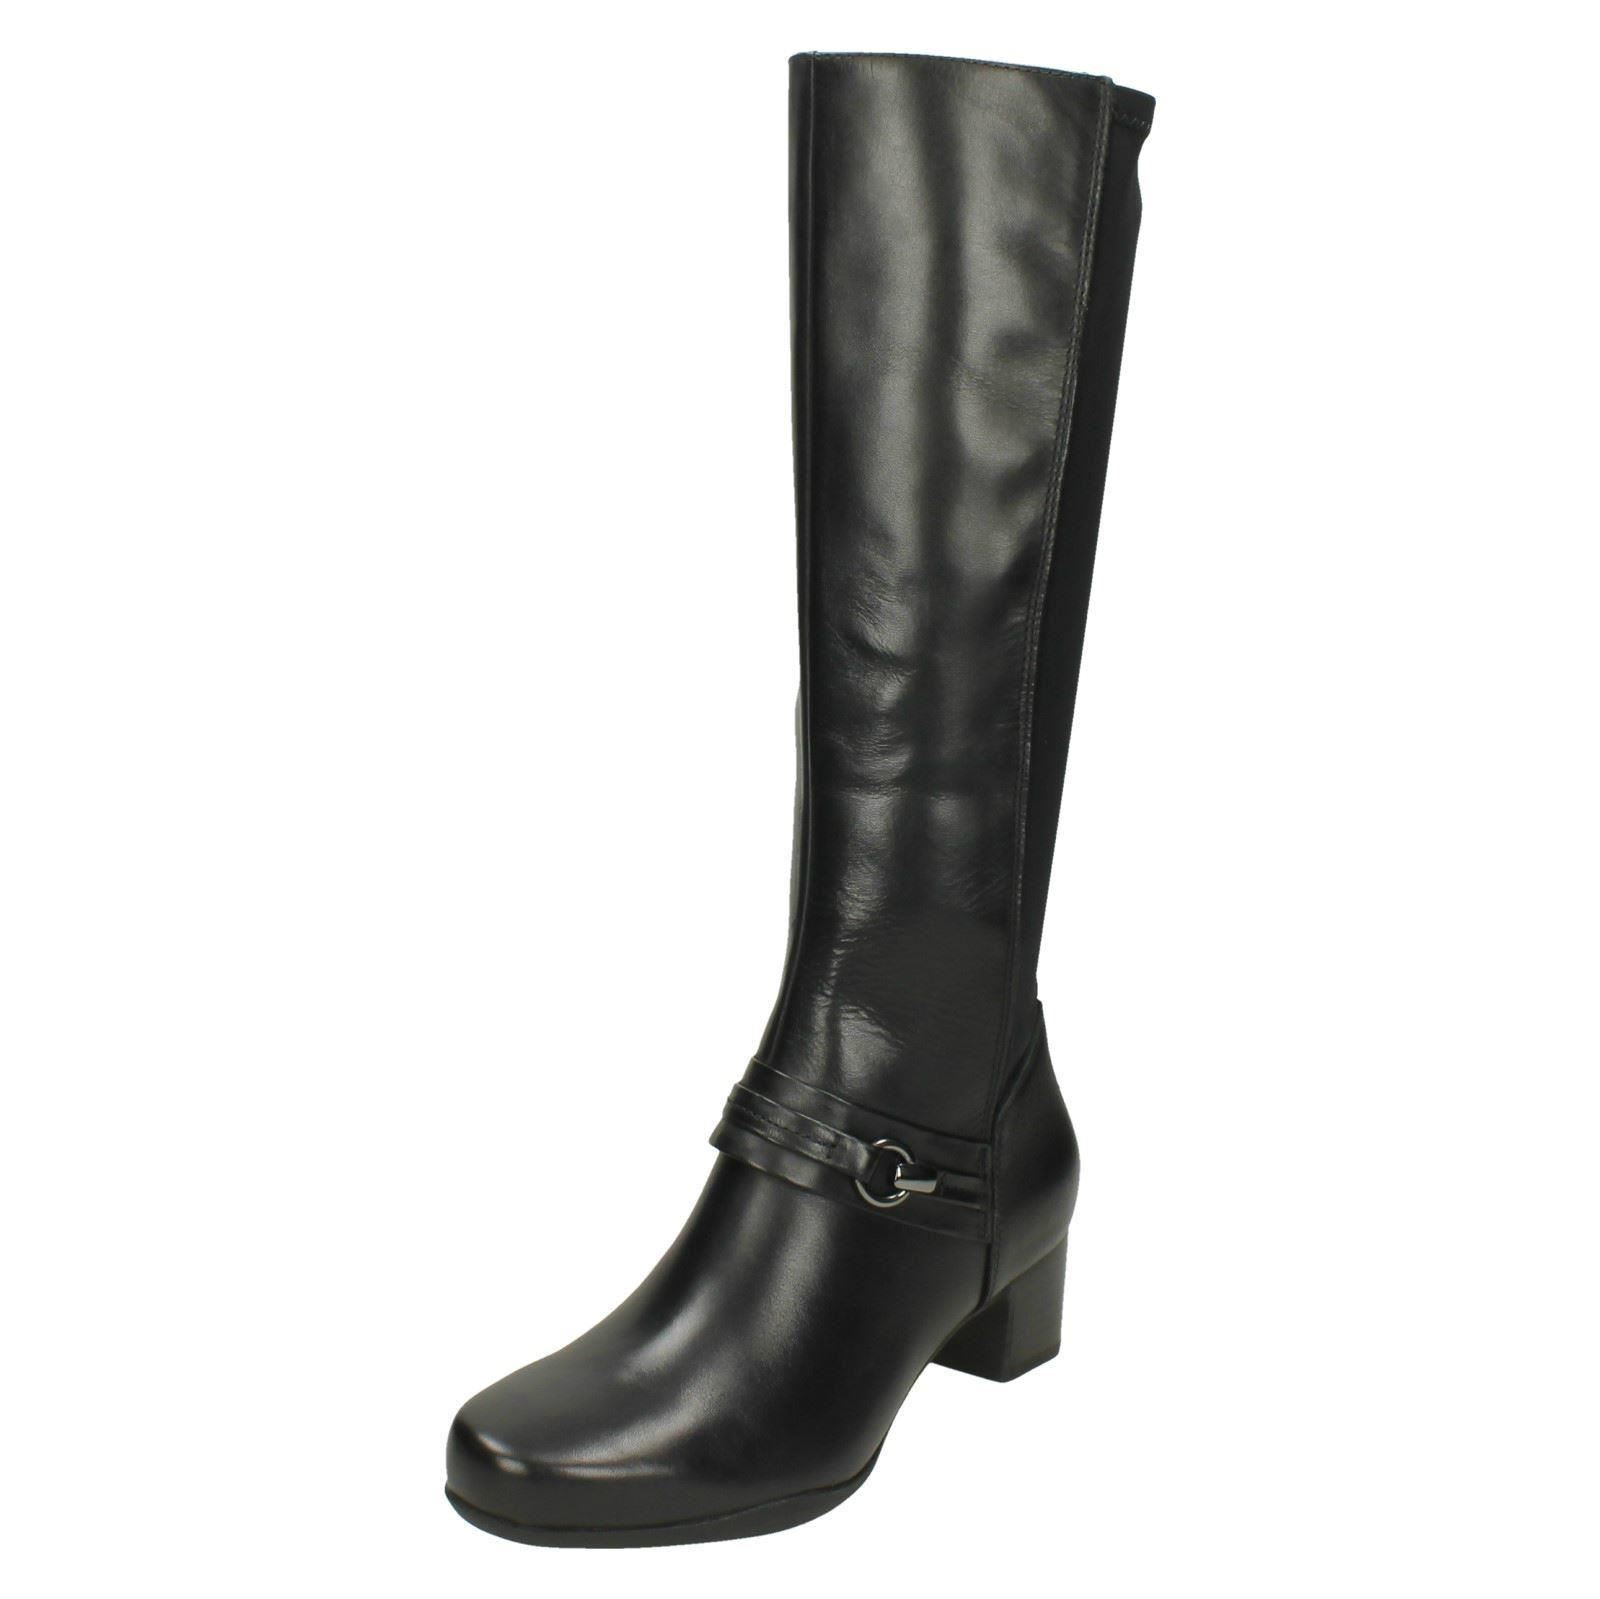 Clarks Clarks Clarks Ladies Long Leather Boots 'Rosalyn Clara' 8df2e7